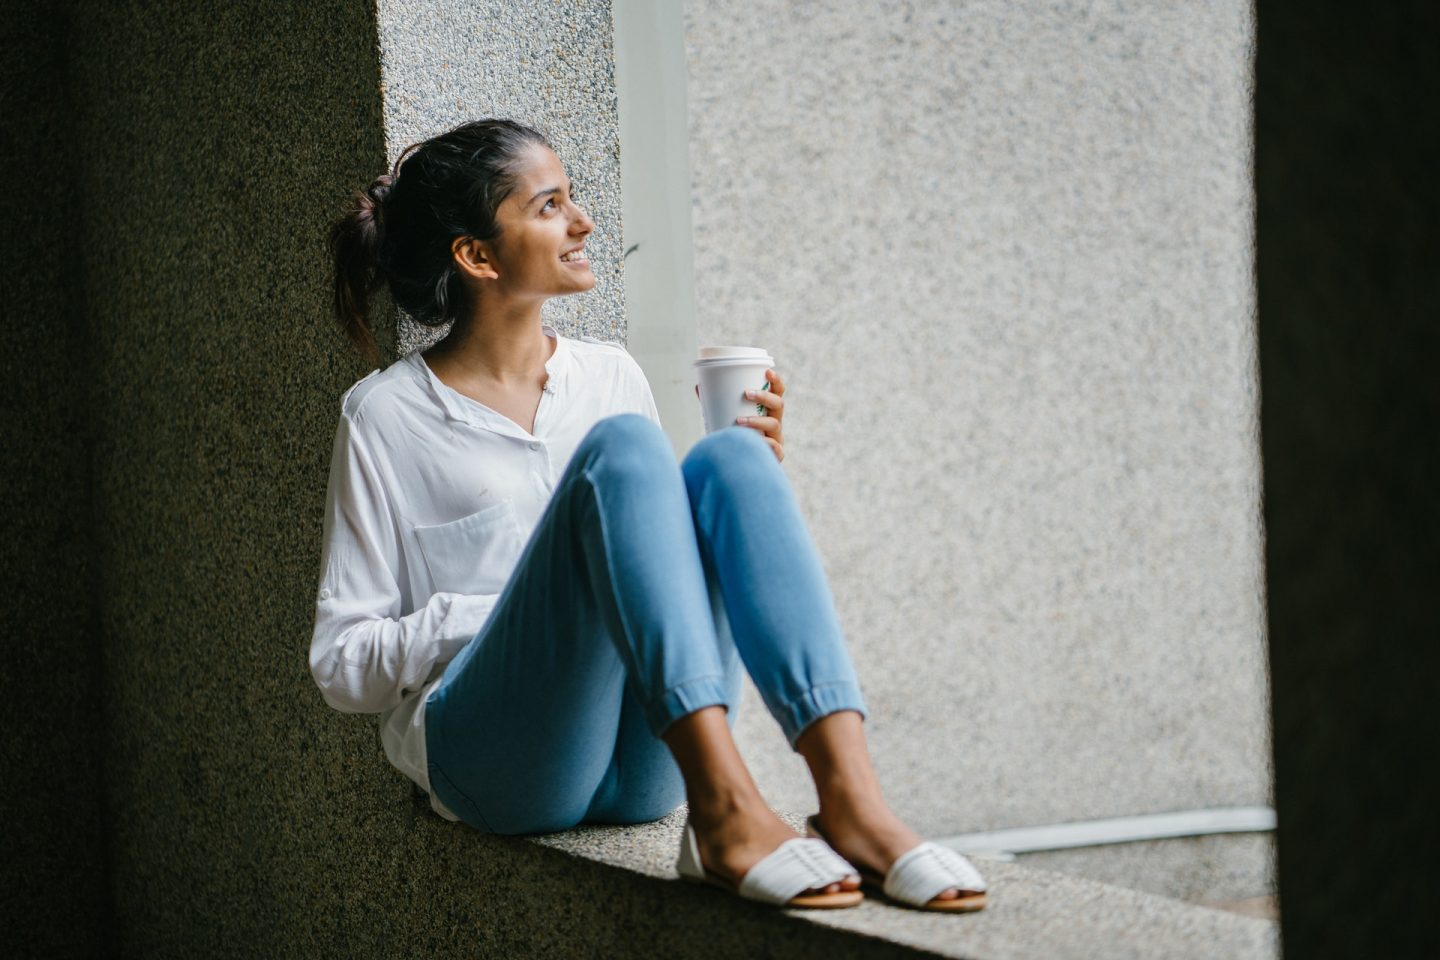 Four Reasons Why Being Single Is the Best Way to Supercharge Your Self-Acceptance